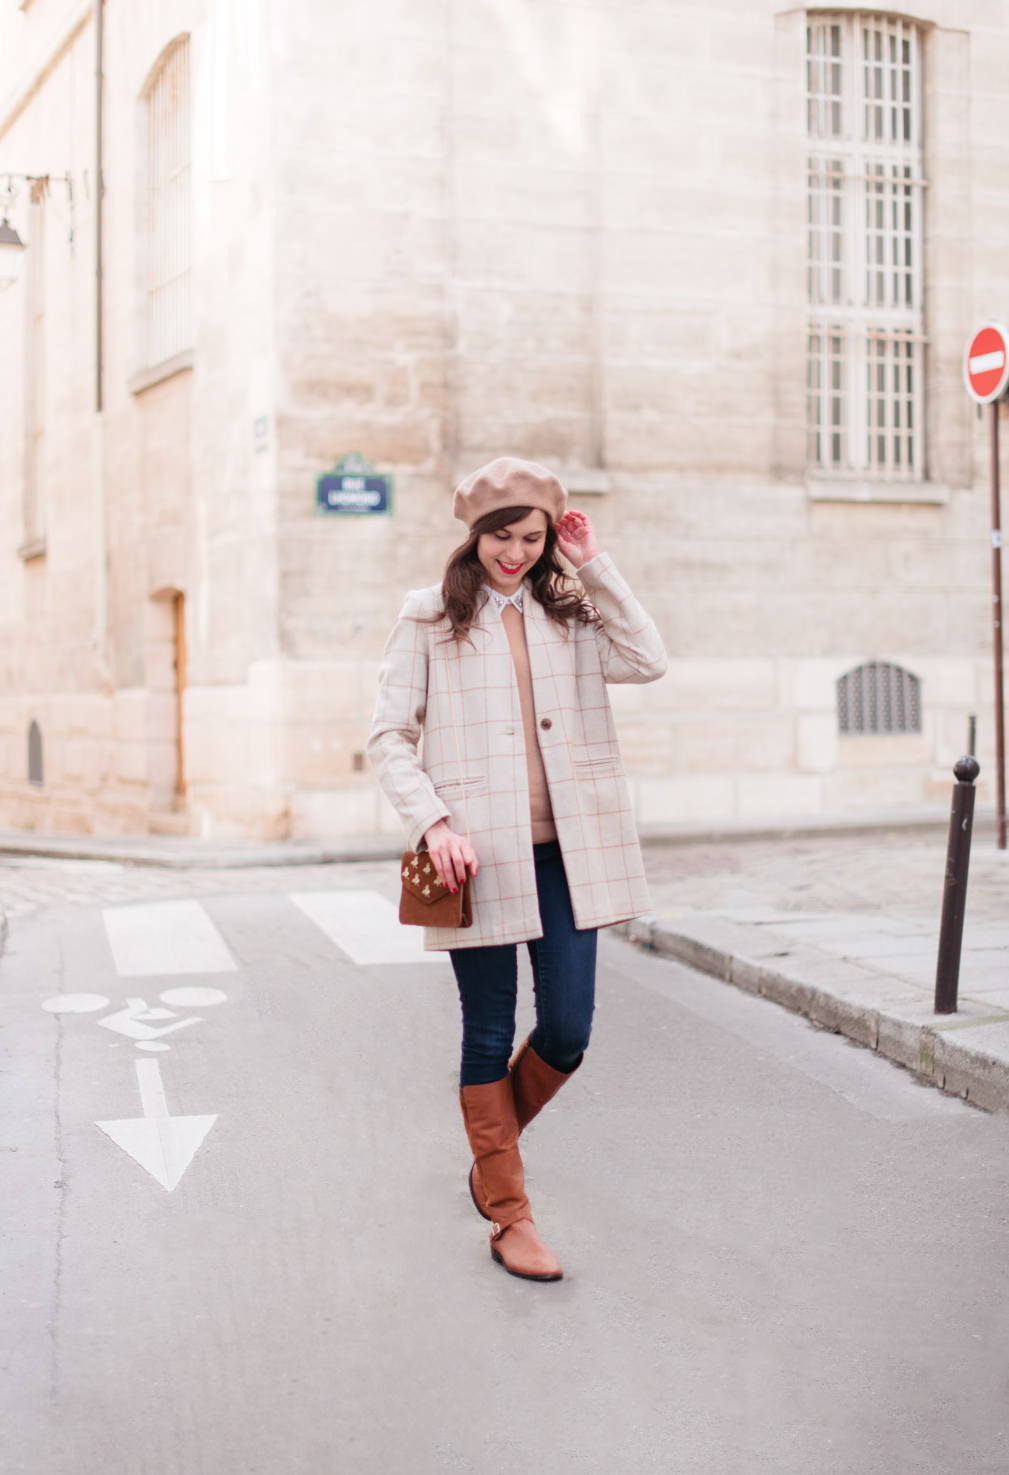 Blog-Mode-And-The-City-Looks-Porter-Le-Beret-4ok